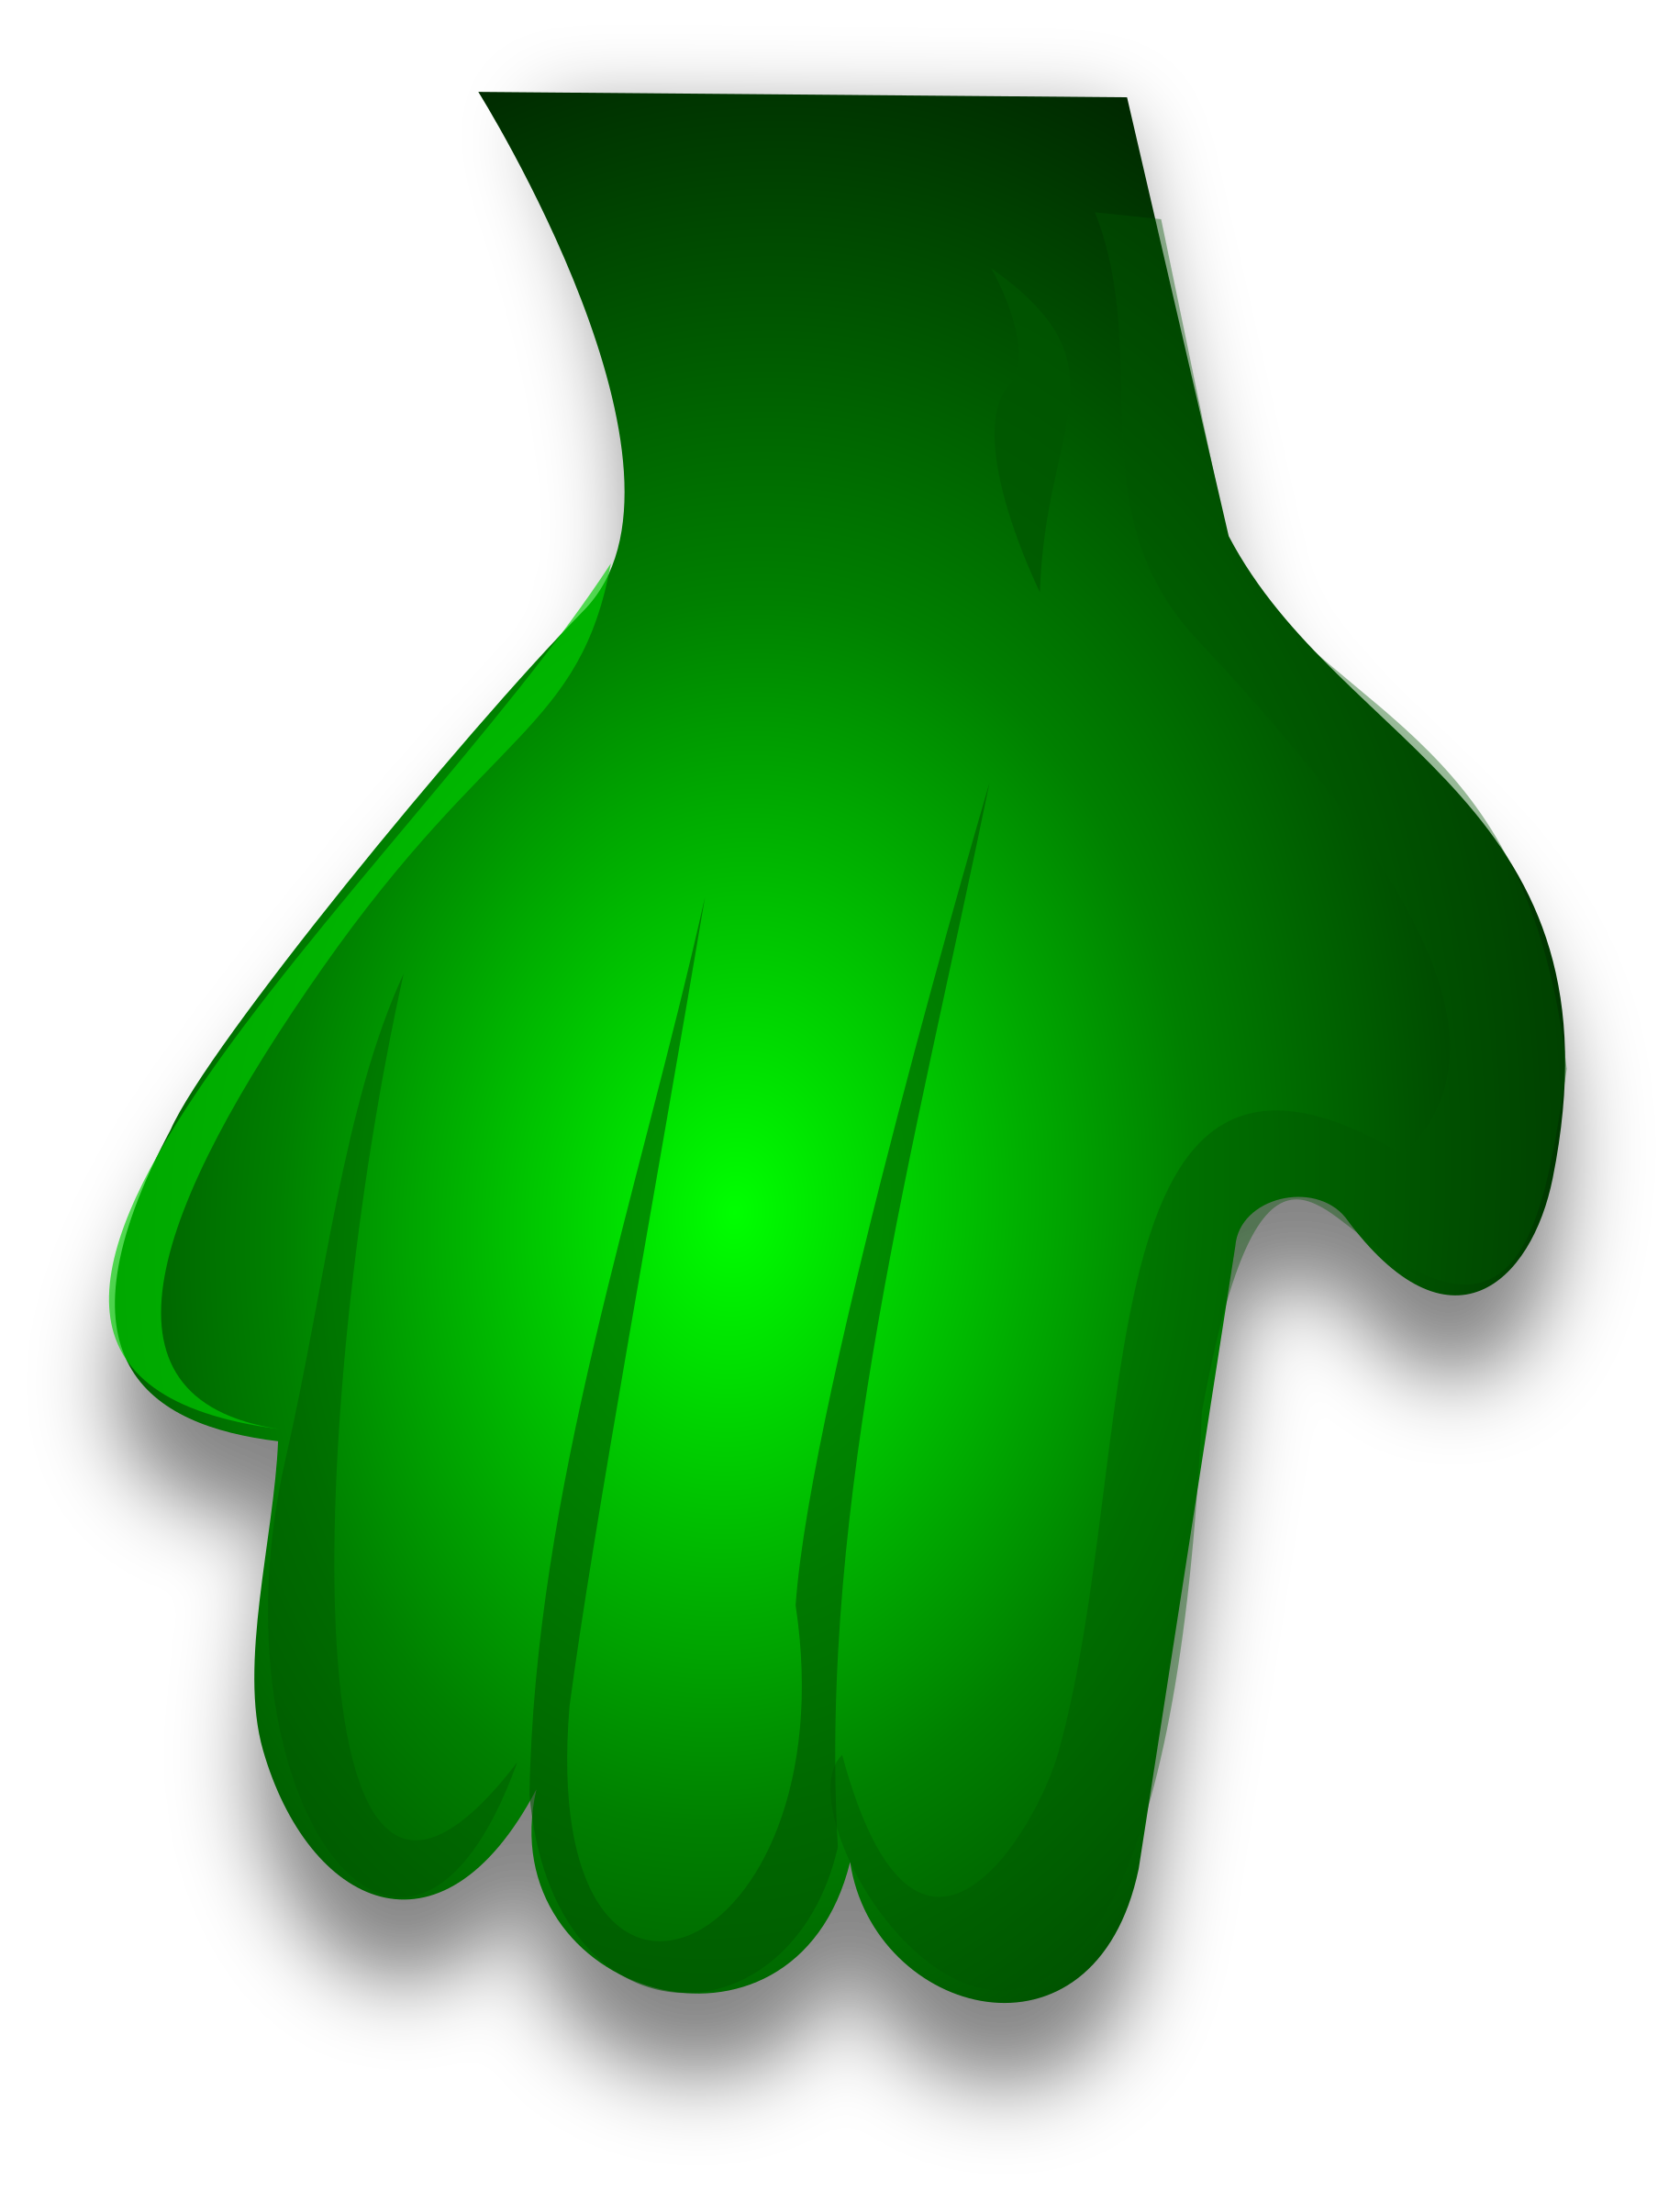 Monster hands png. Green hand icons free